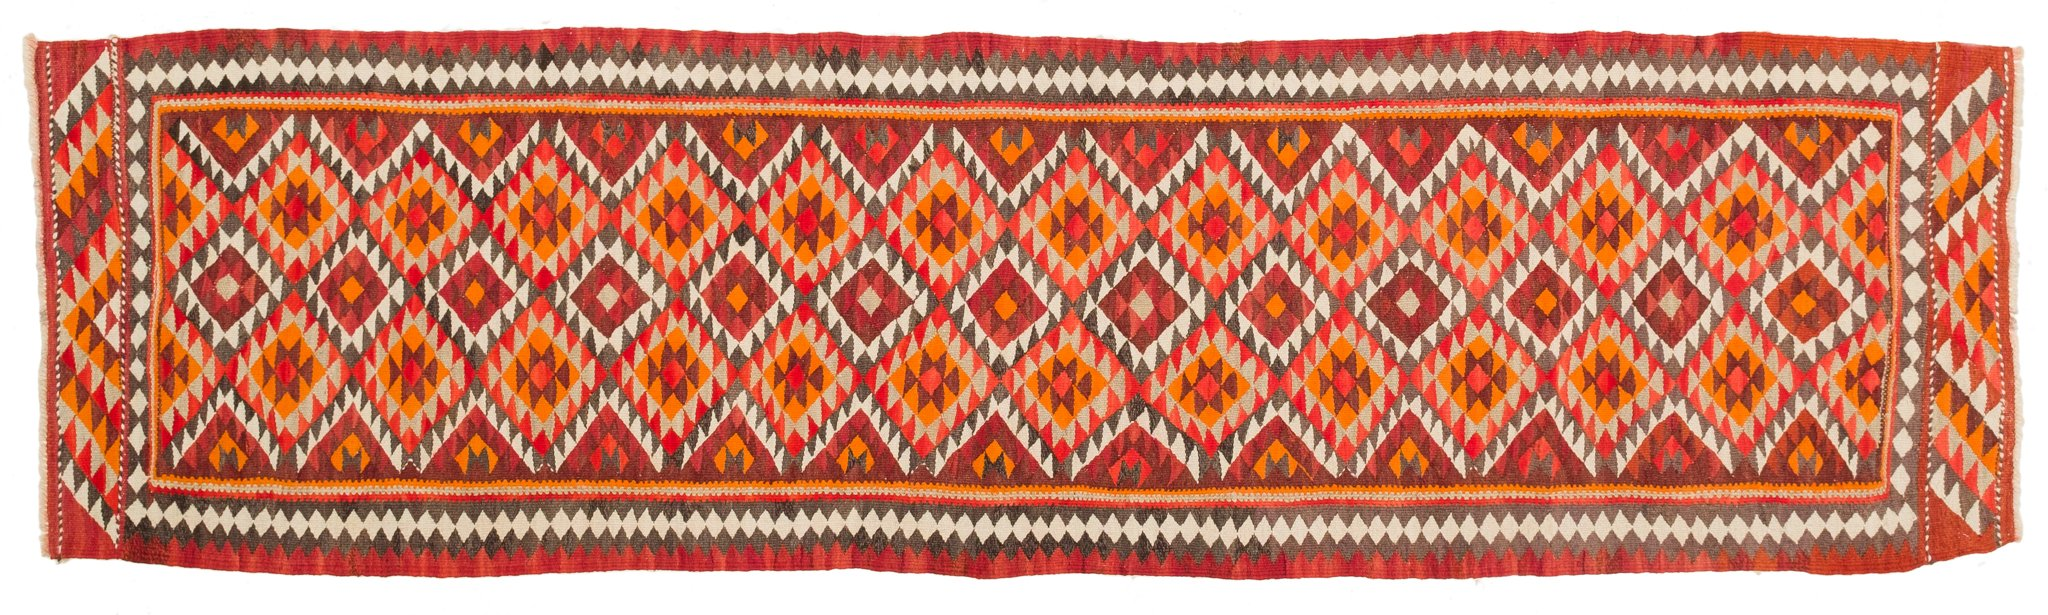 Vintage Kilim Runner Rug Raimonds